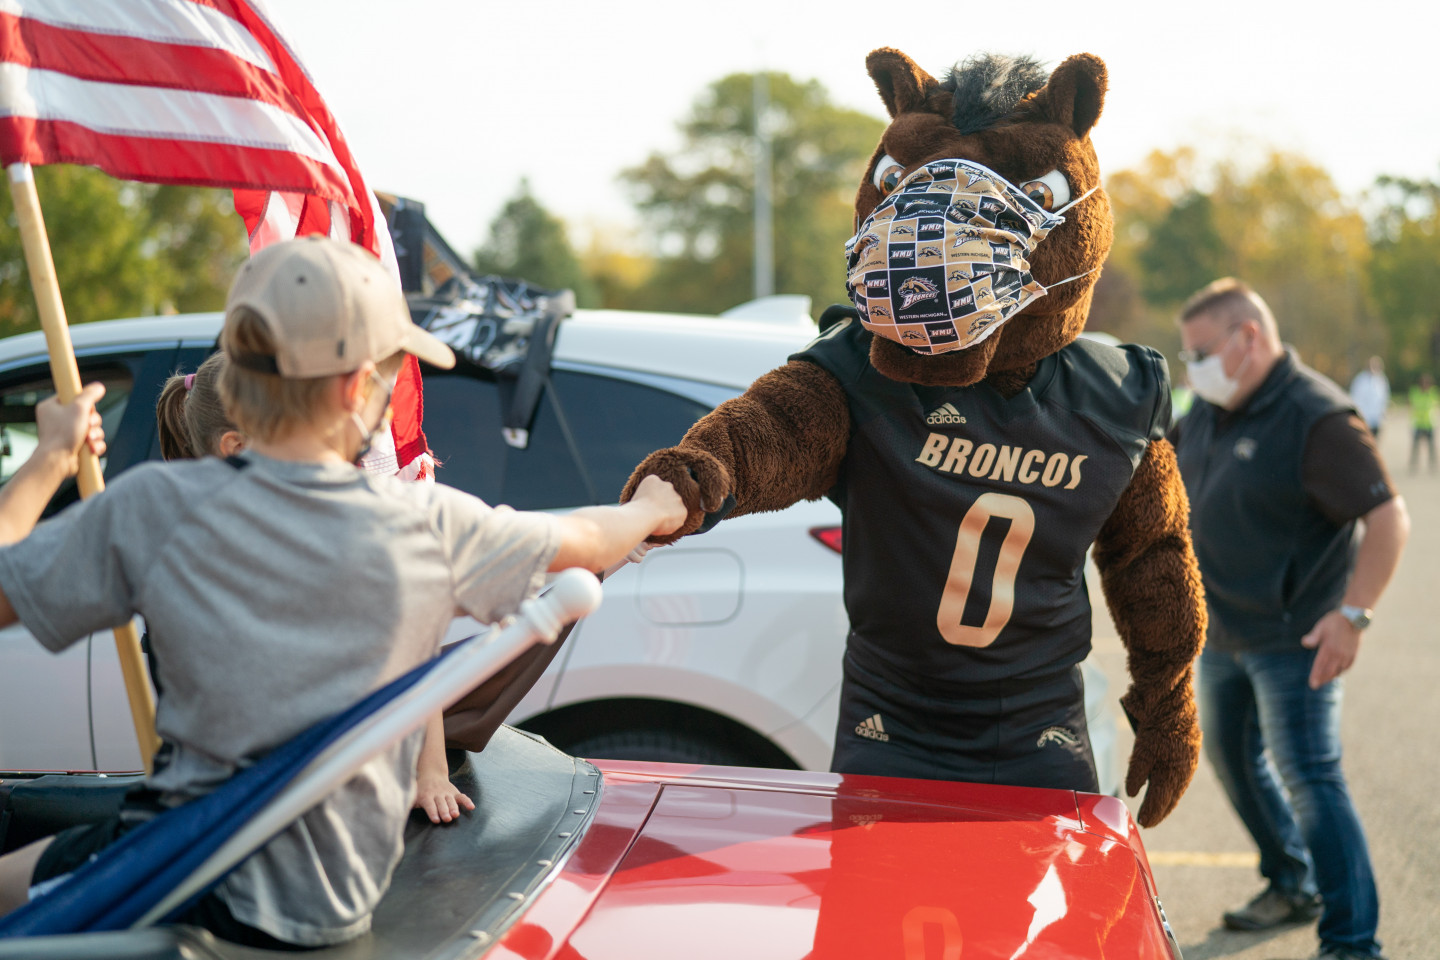 Buster Bronco bumps fists with a young fan.